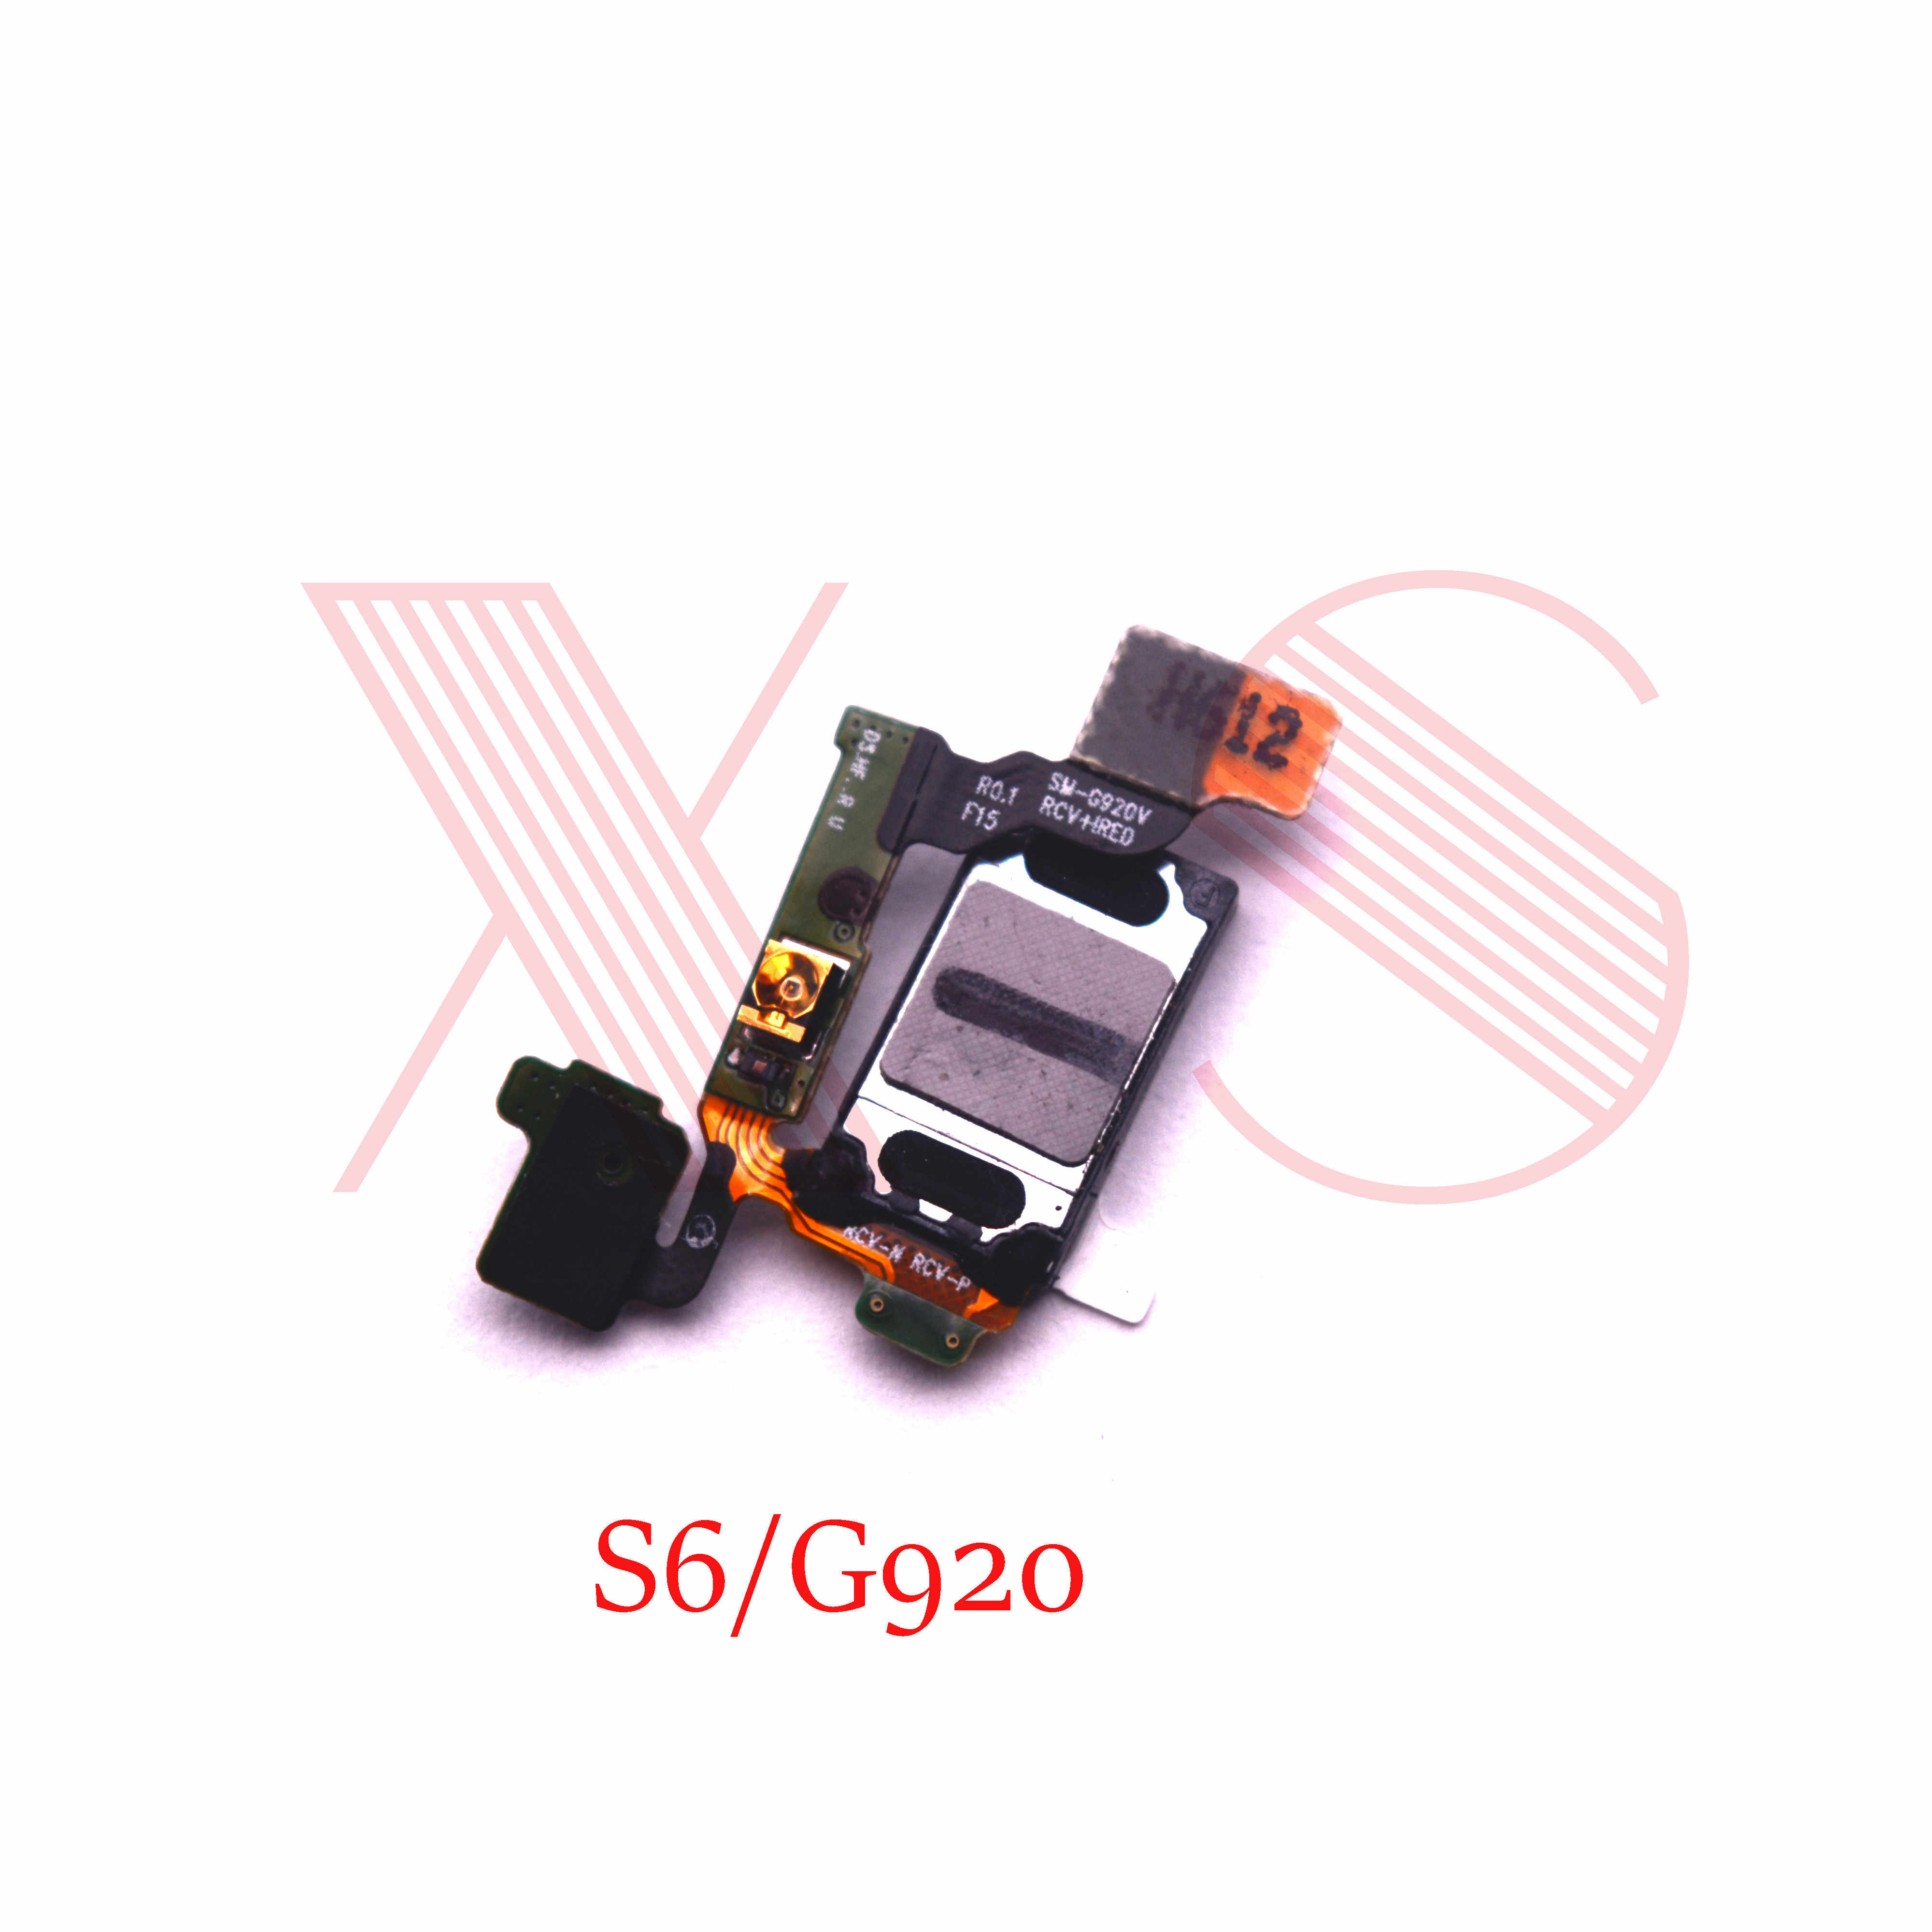 earpiece Speaker Earphone Ear Piece with/without Proximity sensor flex  cable for Samsung Galaxy s3 s4 s5 s6 s7 s8 s9 edge plus